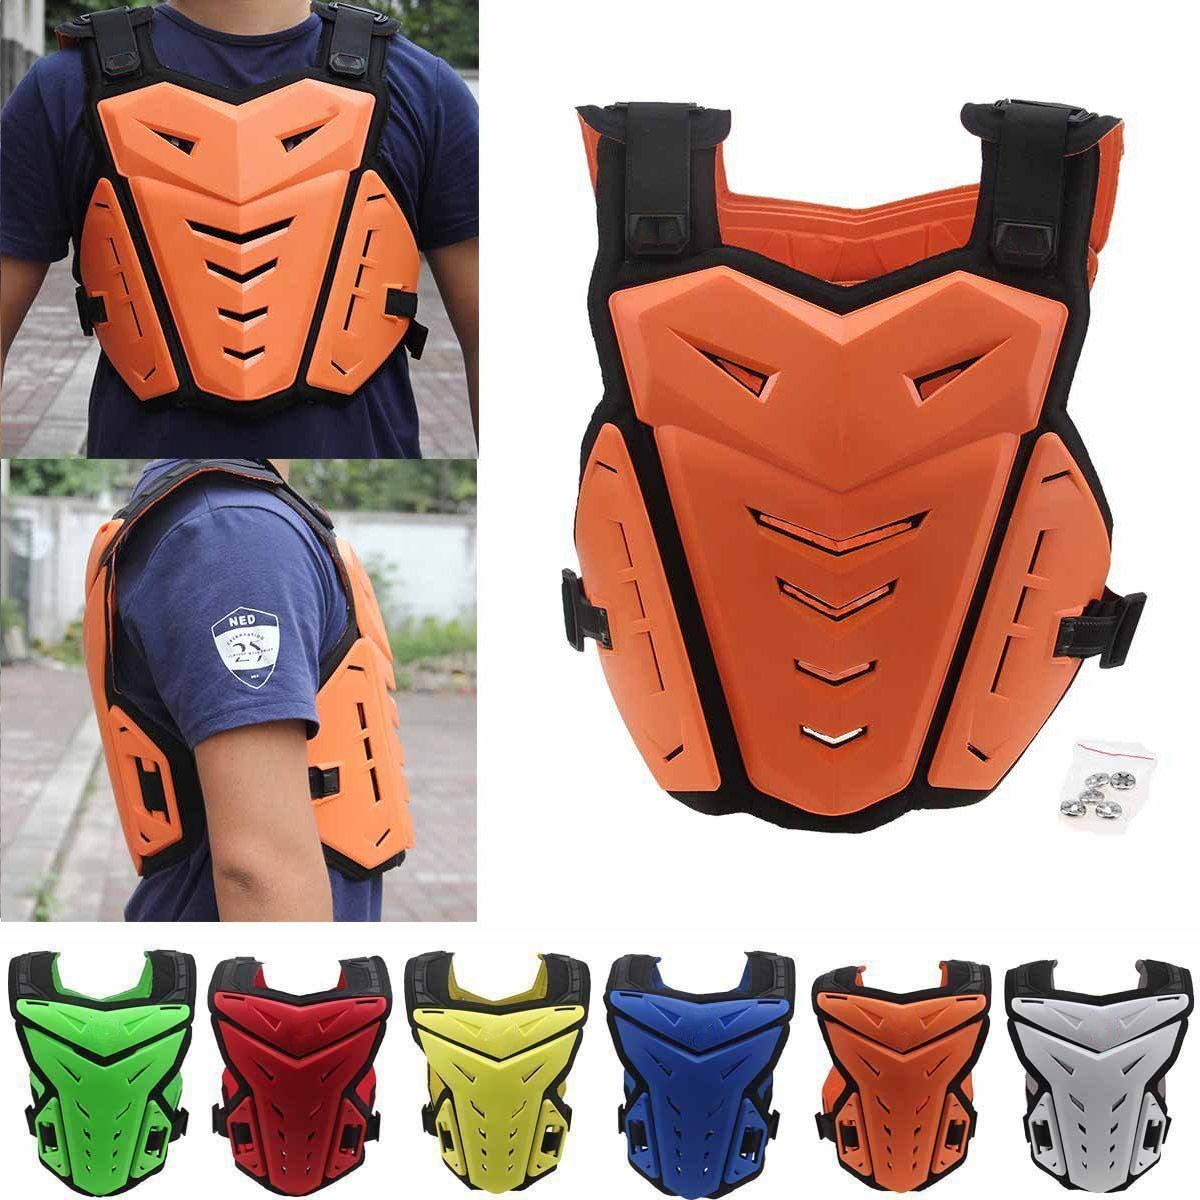 Chest Back Protector, Body Vest Armor Protective for Motocross Riding Skating Skiing Scooter